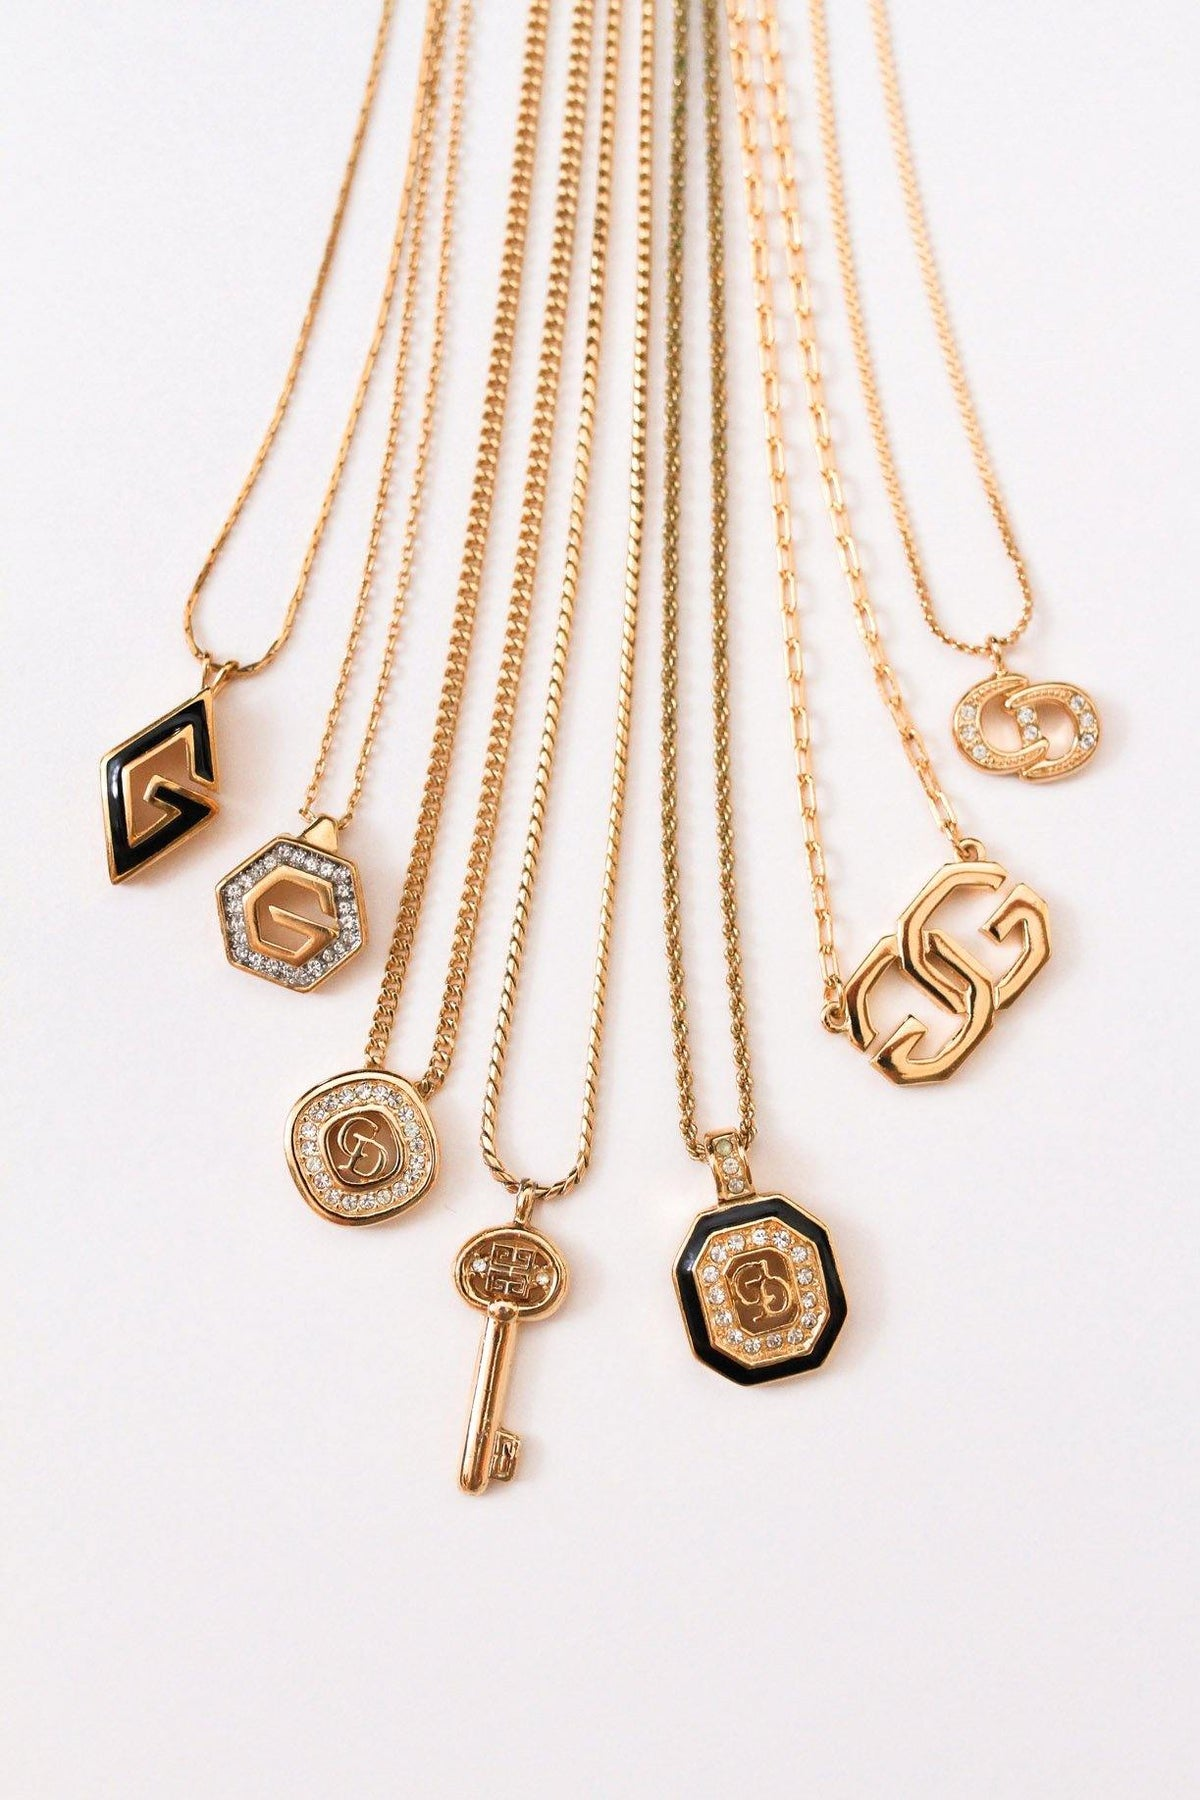 Vintage Pendant Necklaces from Sweet & Spark.